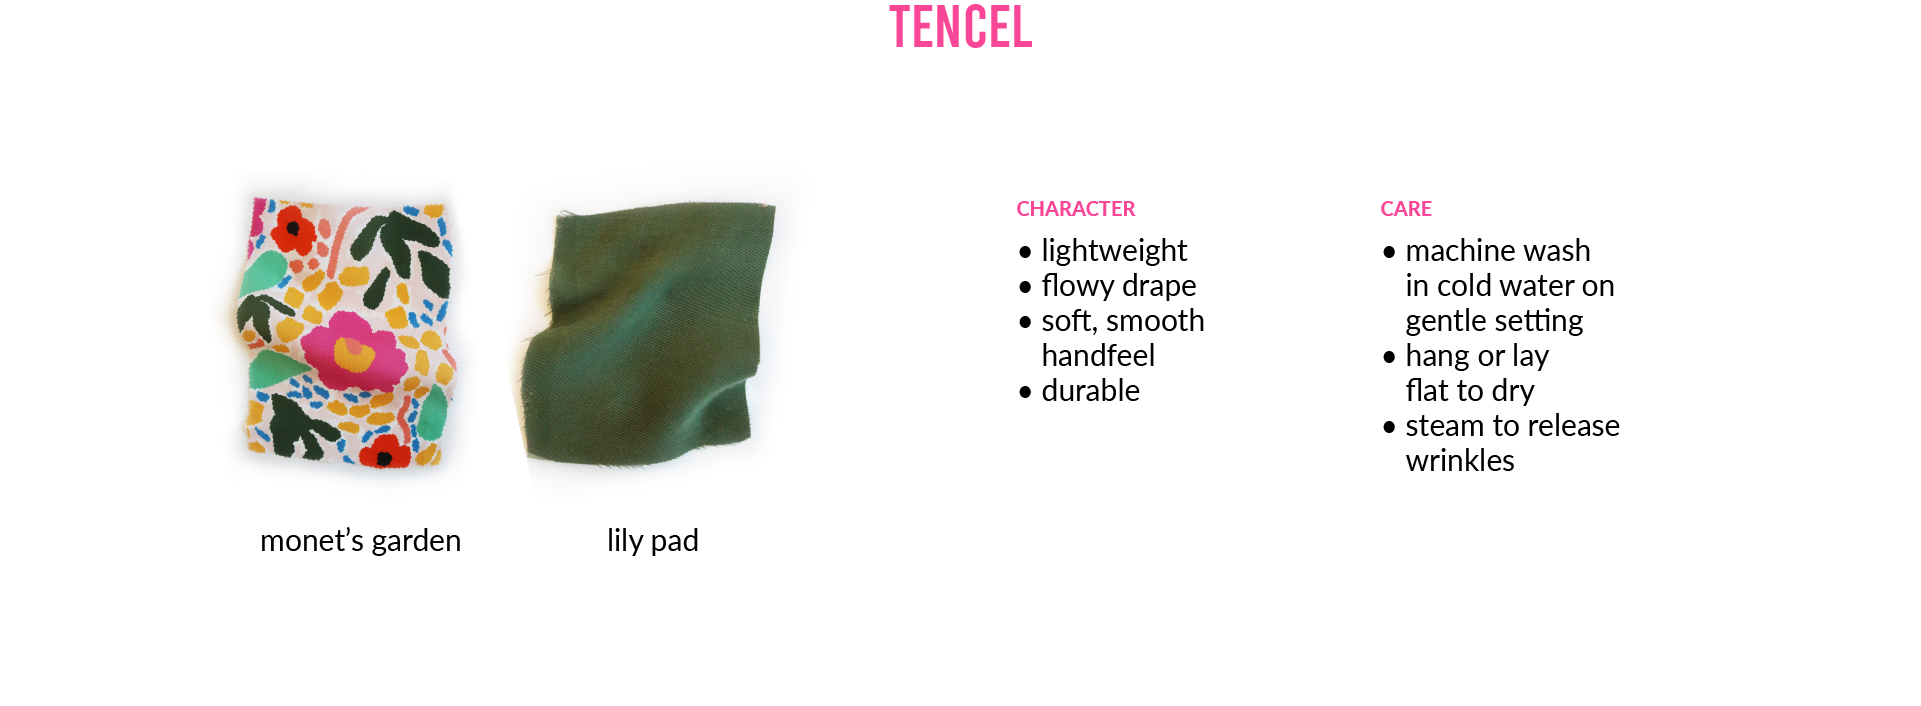 TencelCHARACTER • lightweight • flowy drape • soft, smooth handfeel • durable CARE • machine wash in cold water on gentle setting • hang or lay flat to dry • steam to release wrinkles